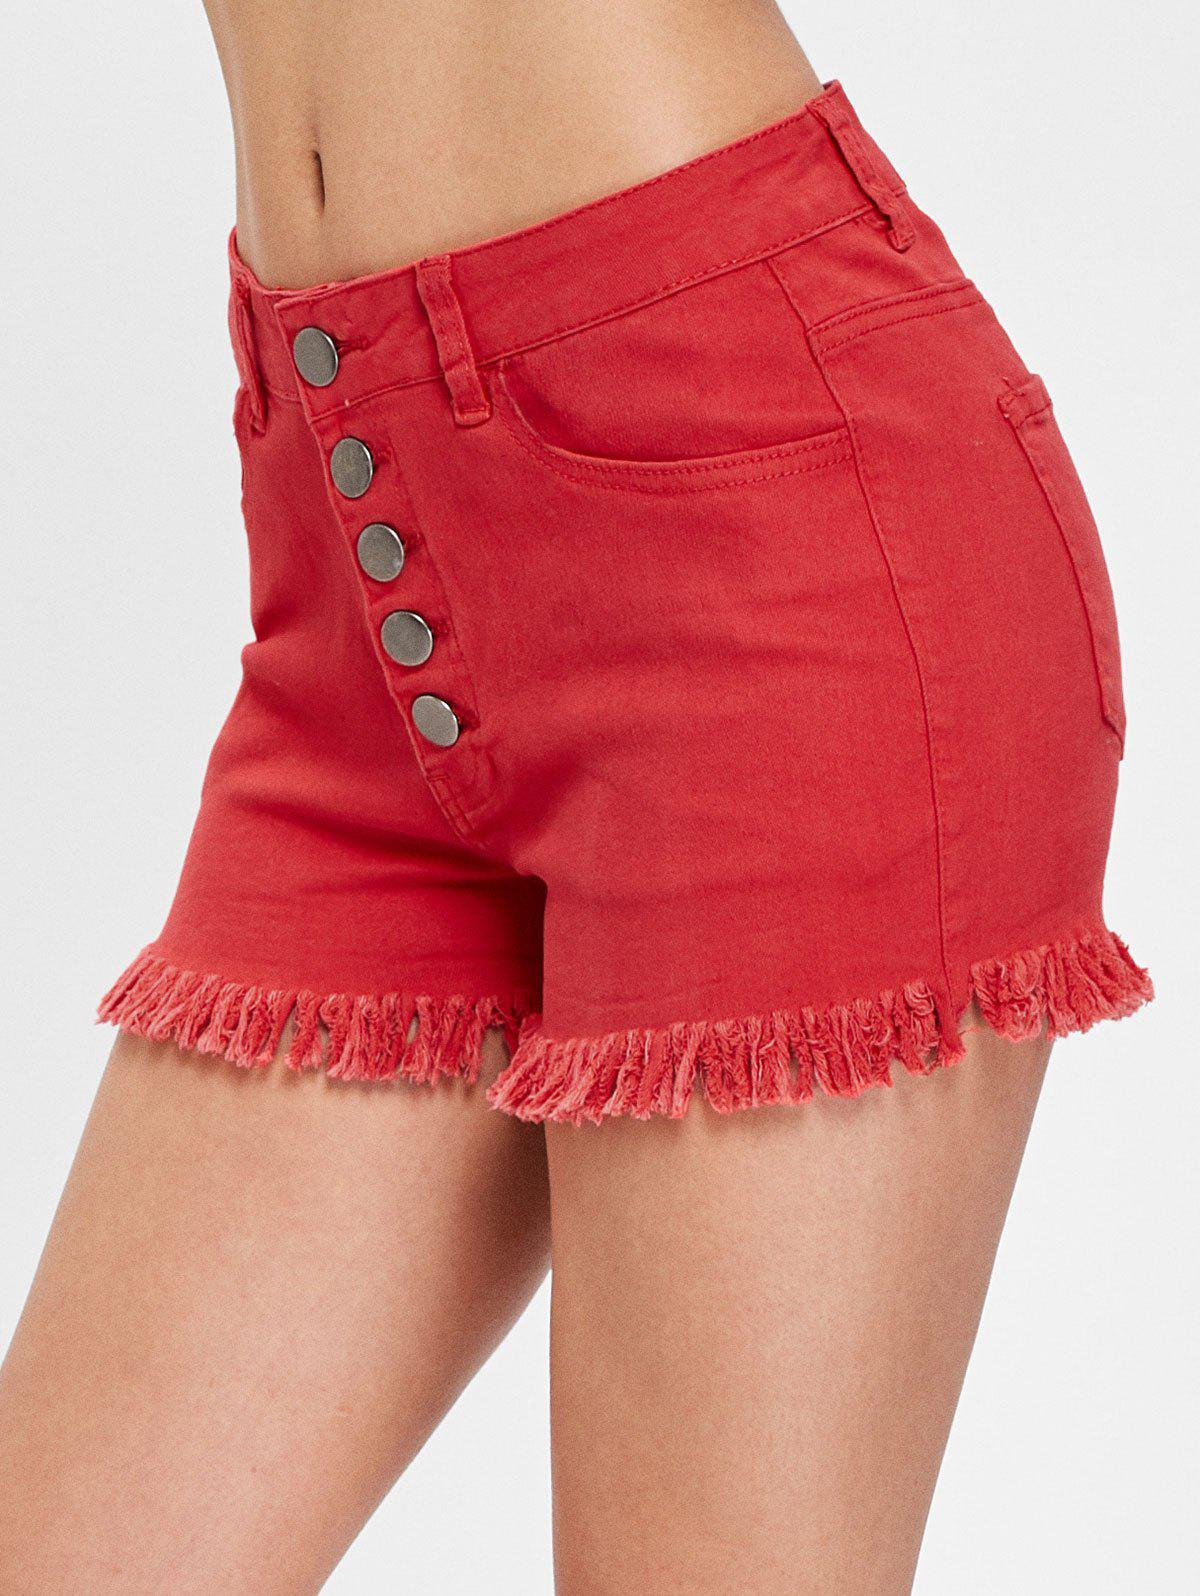 High Waist Cuff Off Denim Shorts - RED S